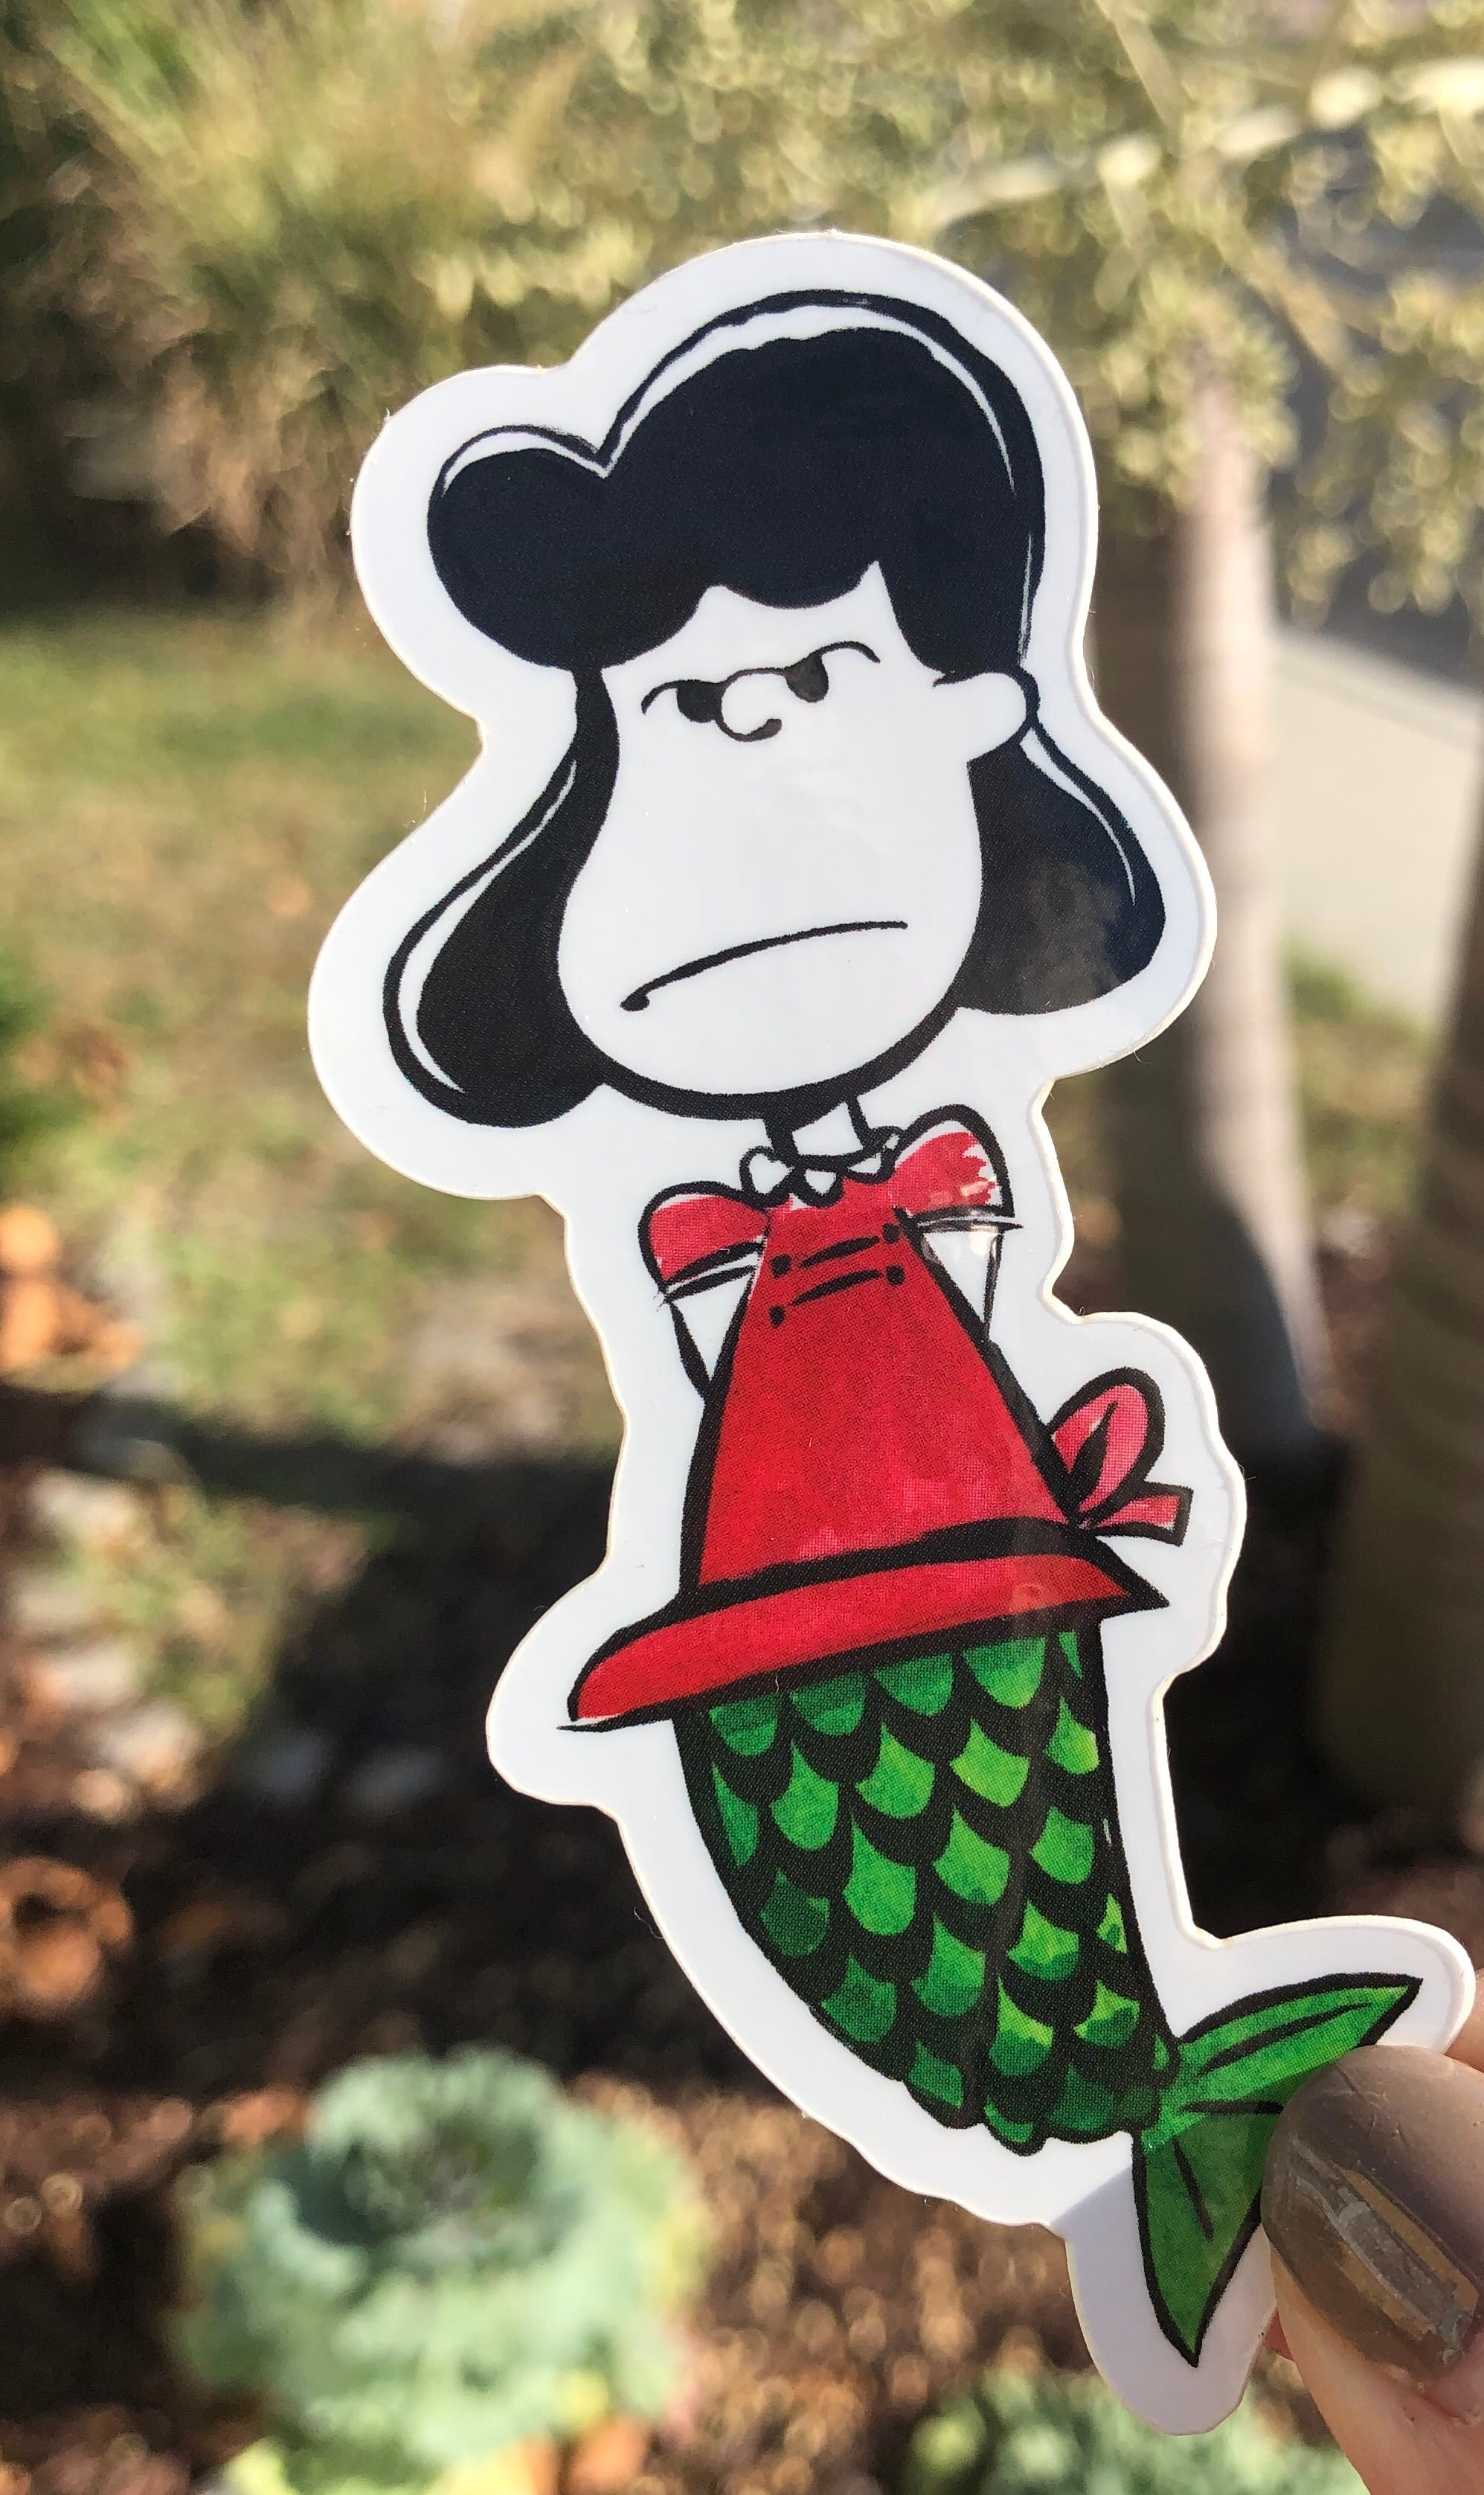 MerLucy sticker